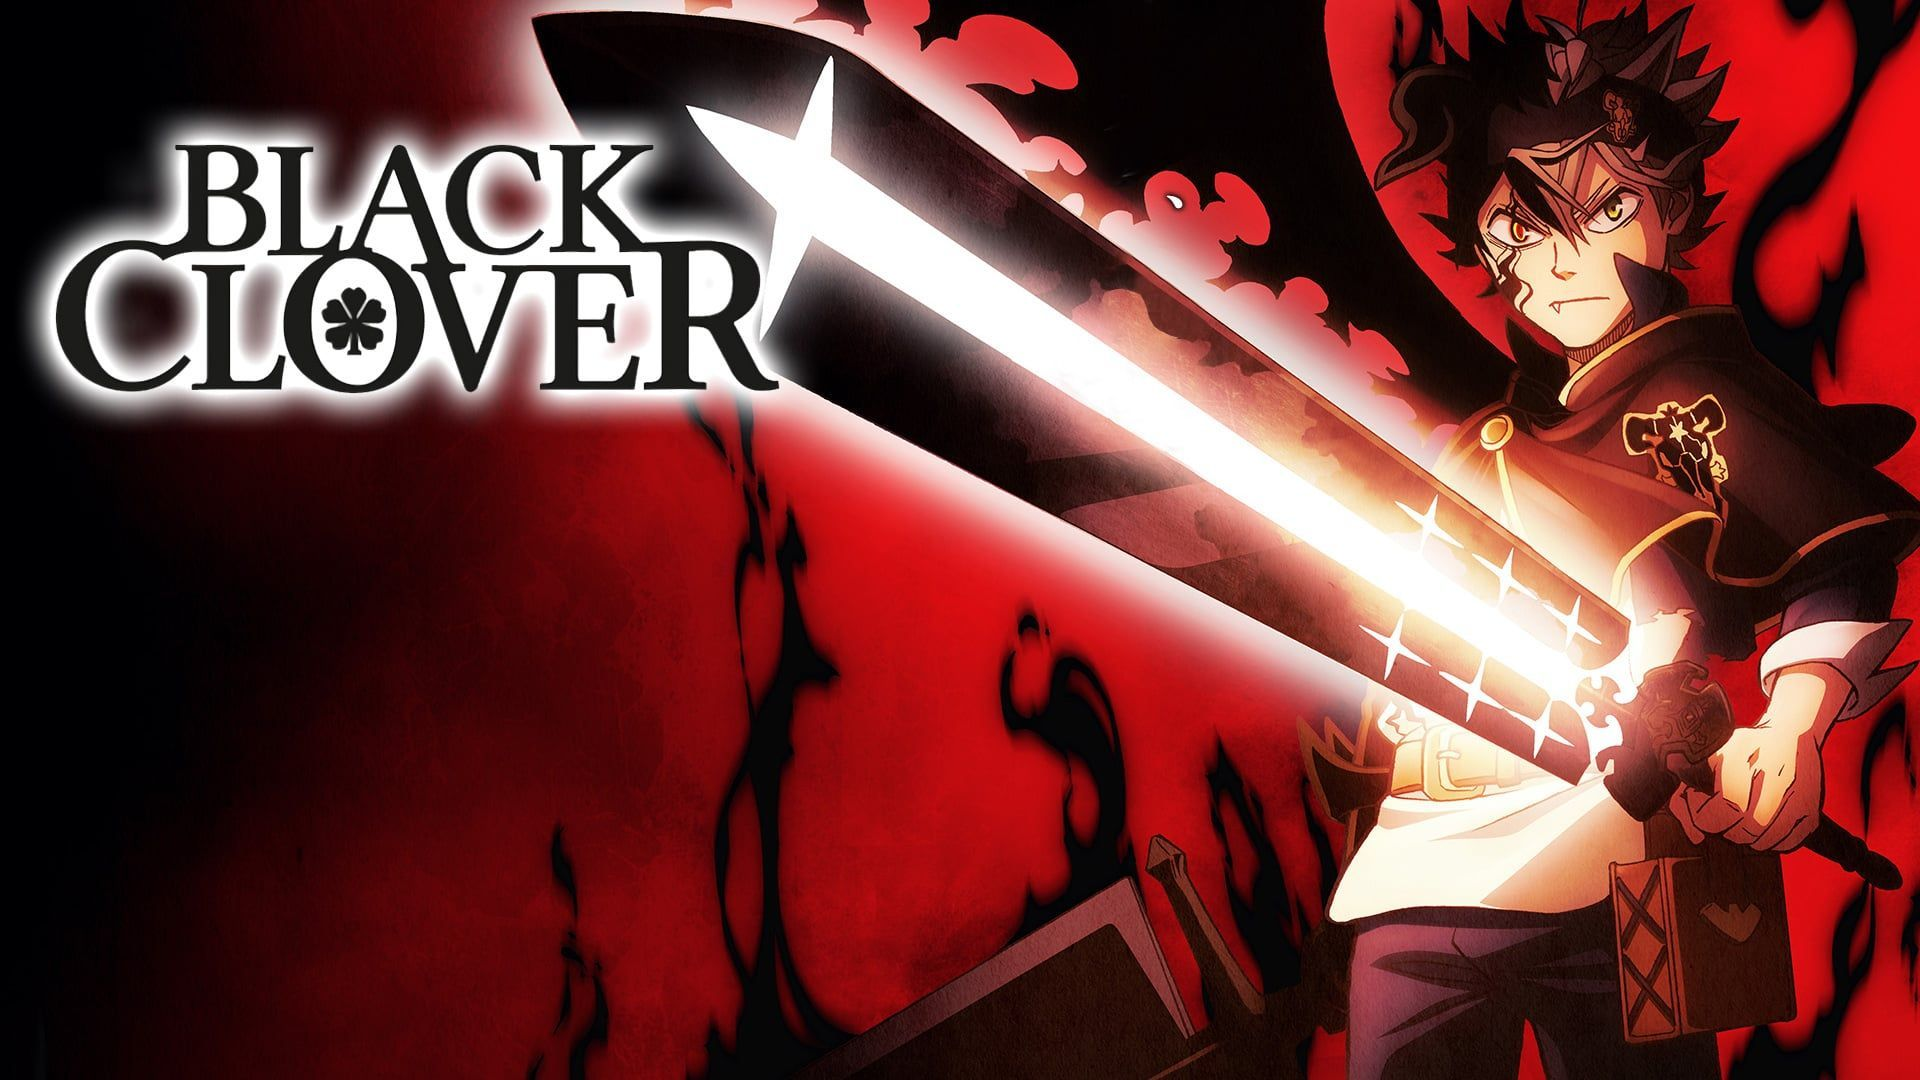 Black Clover Aesthetic Ps4 Wallpapers - Wallpaper Cave